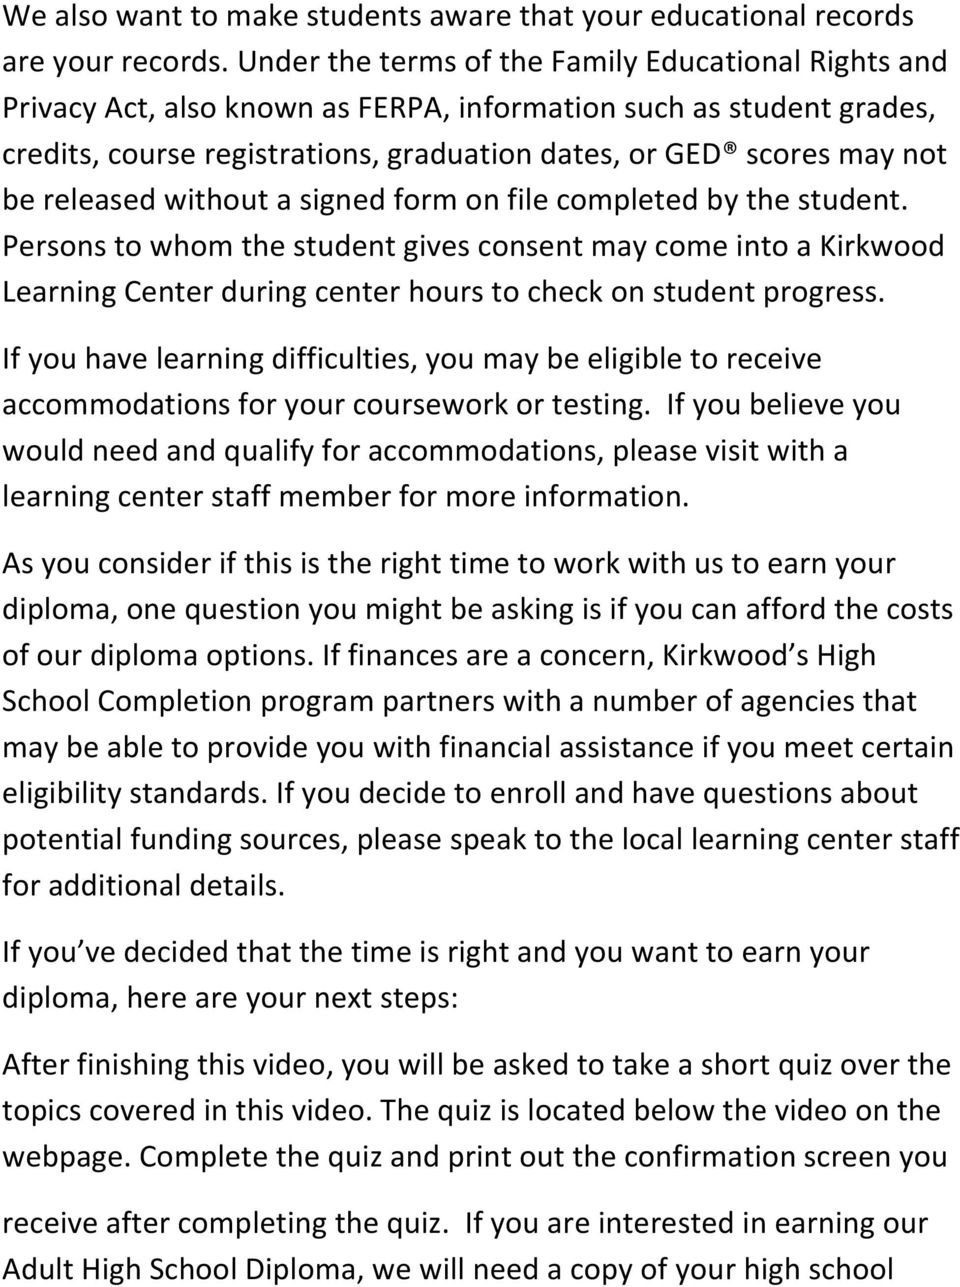 released without a signed form on file completed by the student. Persons to whom the student gives consent may come into a Kirkwood Learning Center during center hours to check on student progress.